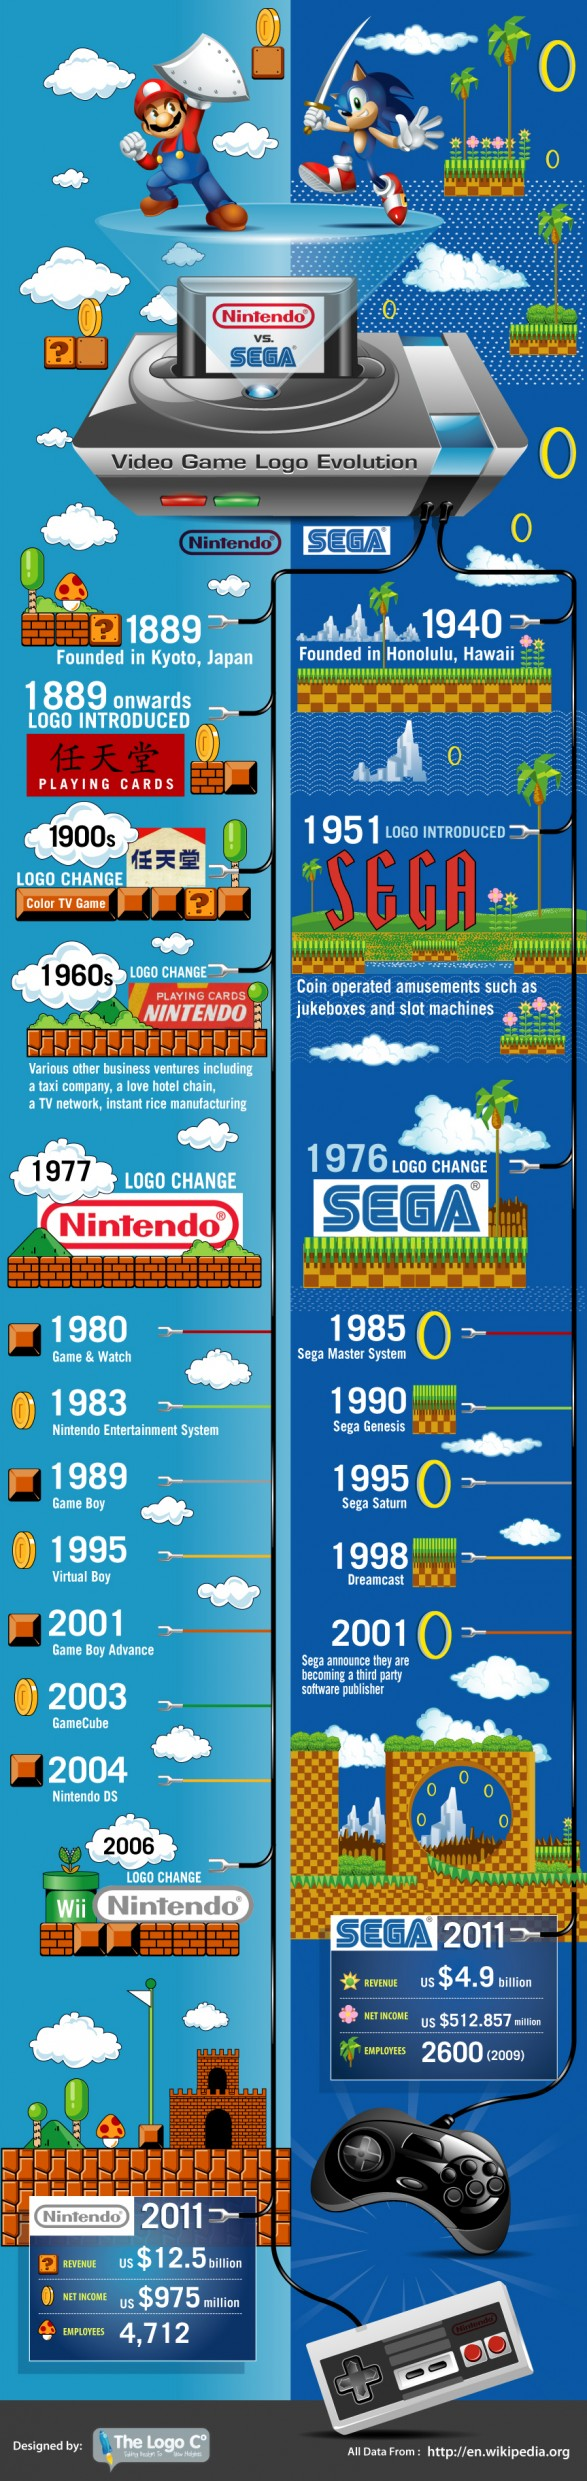 Nintendo vs Sega: Video Game Logo Evolution